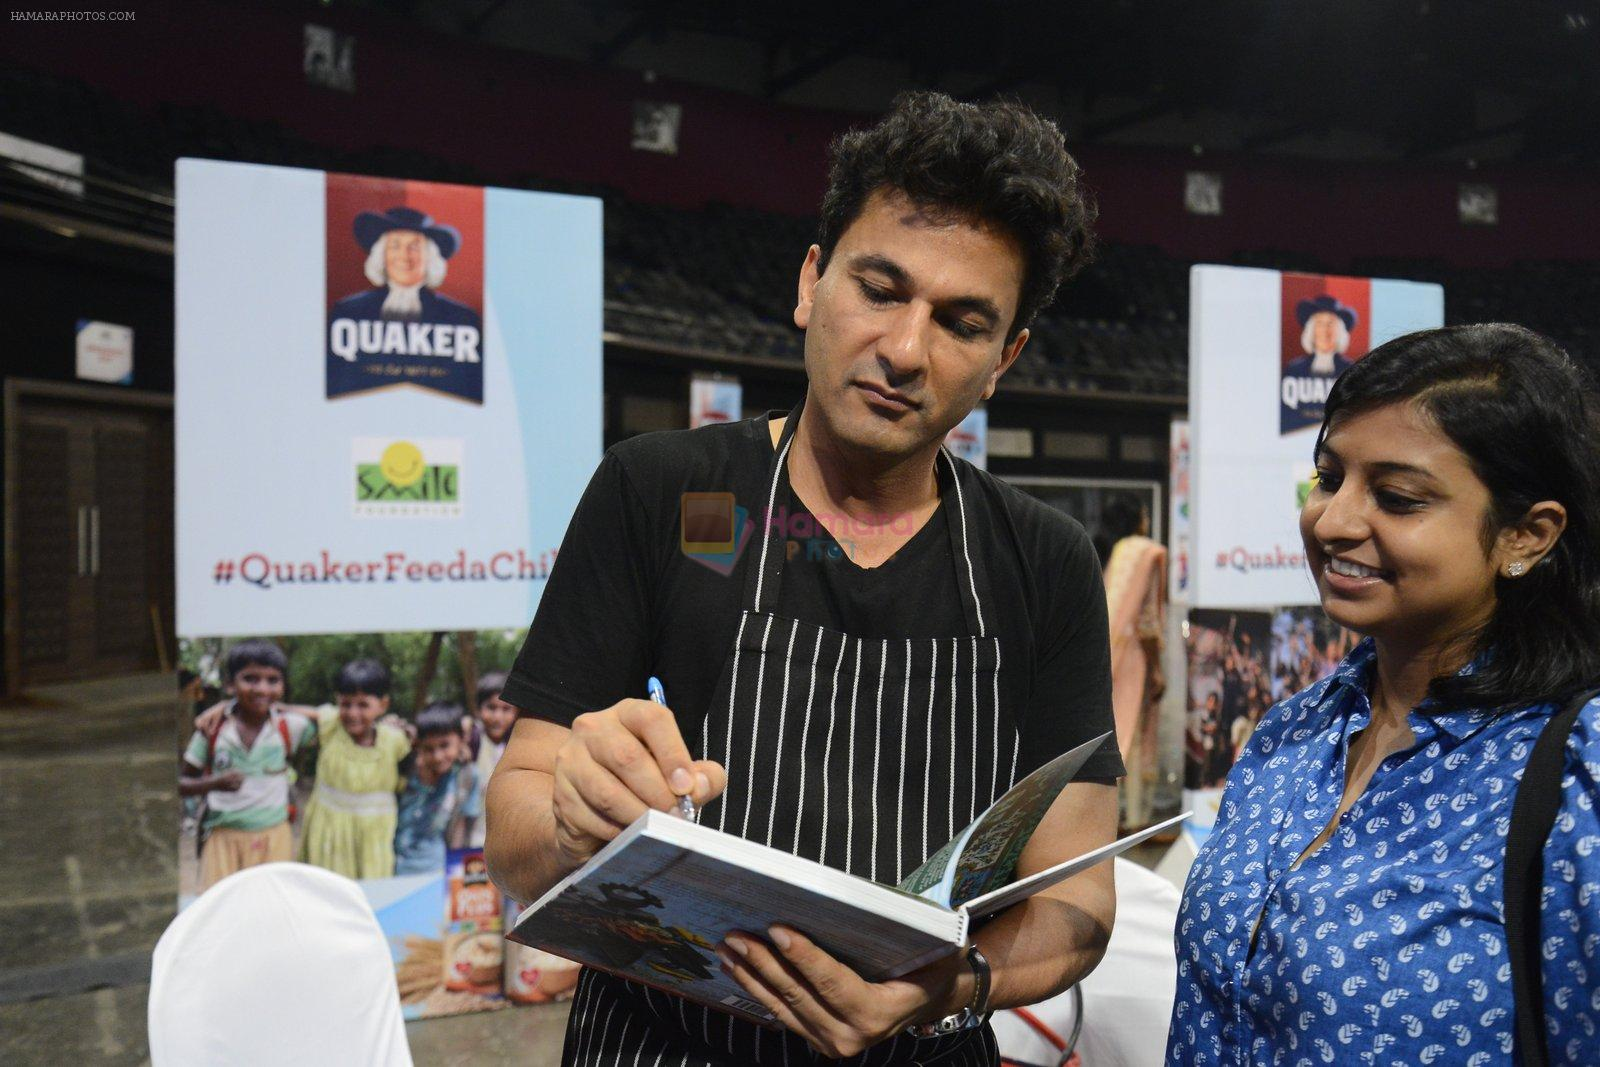 Vikas Khanna for world food day event by smile foundation at Quaker on 16th Oct 2016